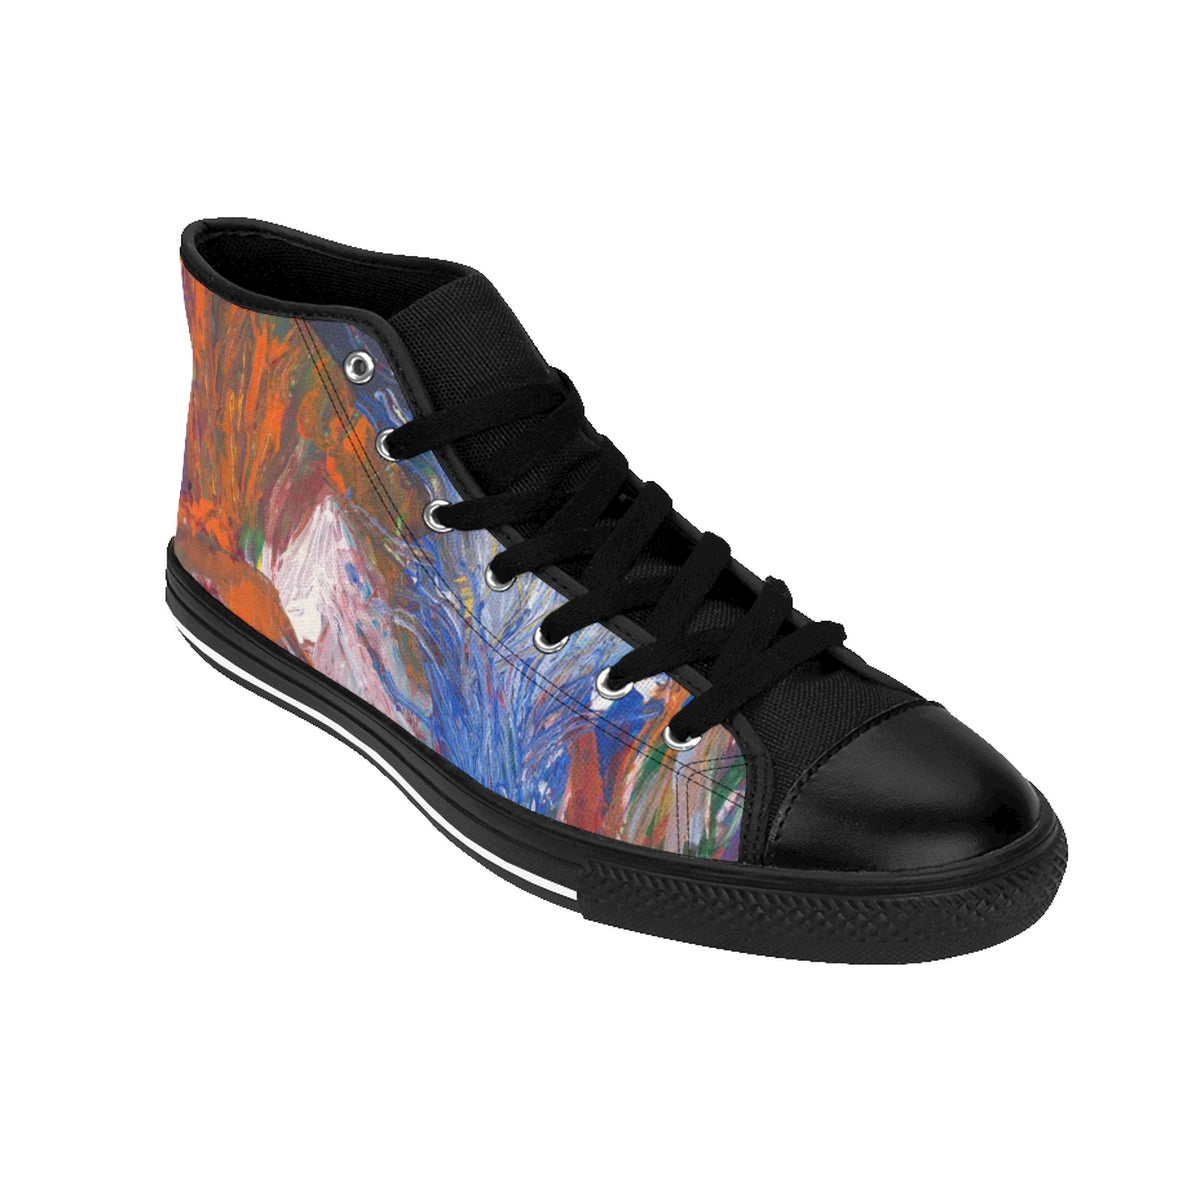 SEA LIFE  Men's High-top Sneakers  SIZES  6 - 14